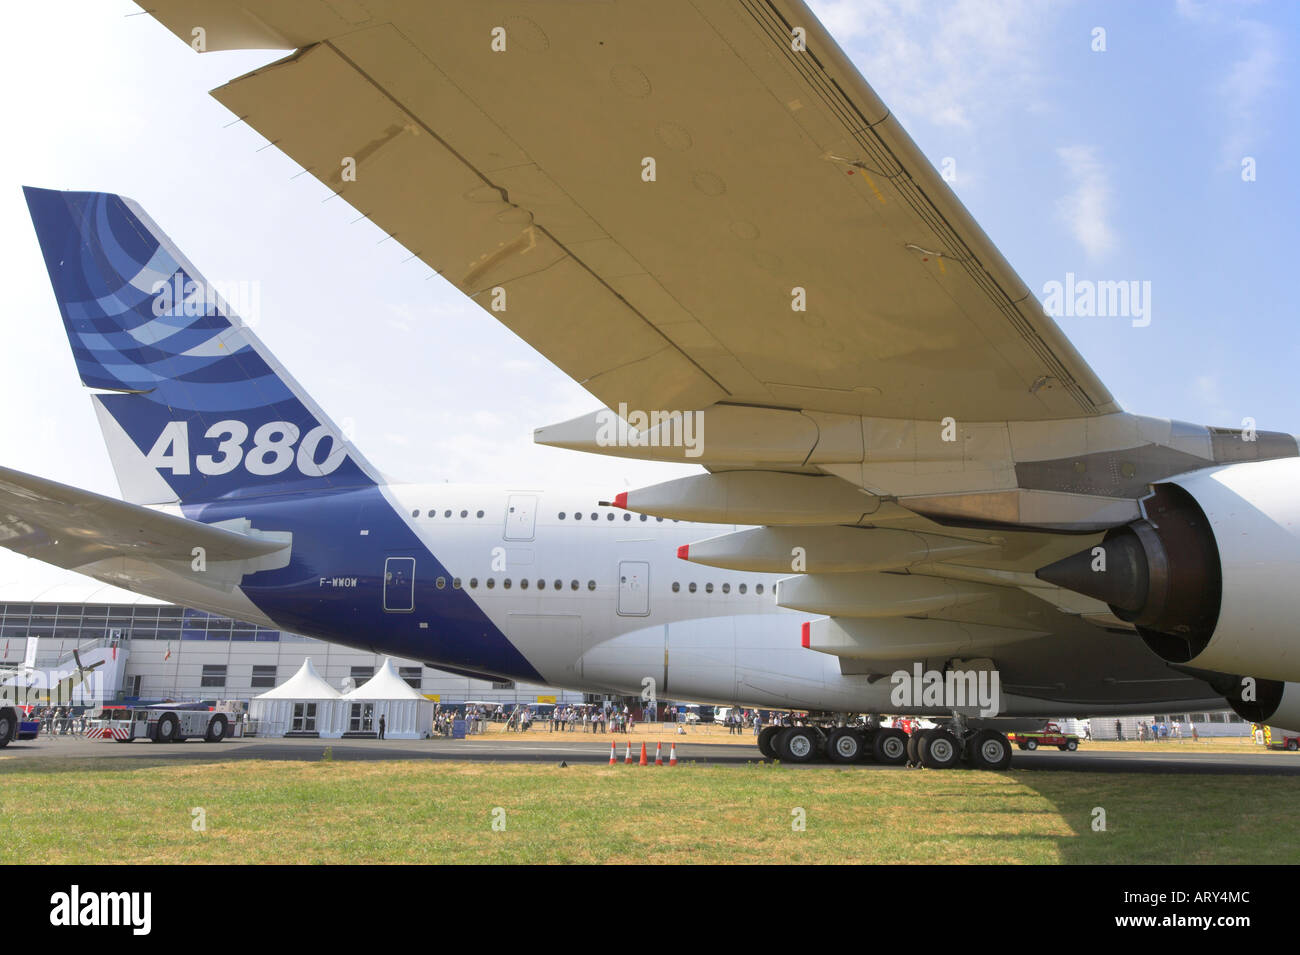 Two prototype Airbus A380 aircraft will soon be added to the exposition of French museums 39